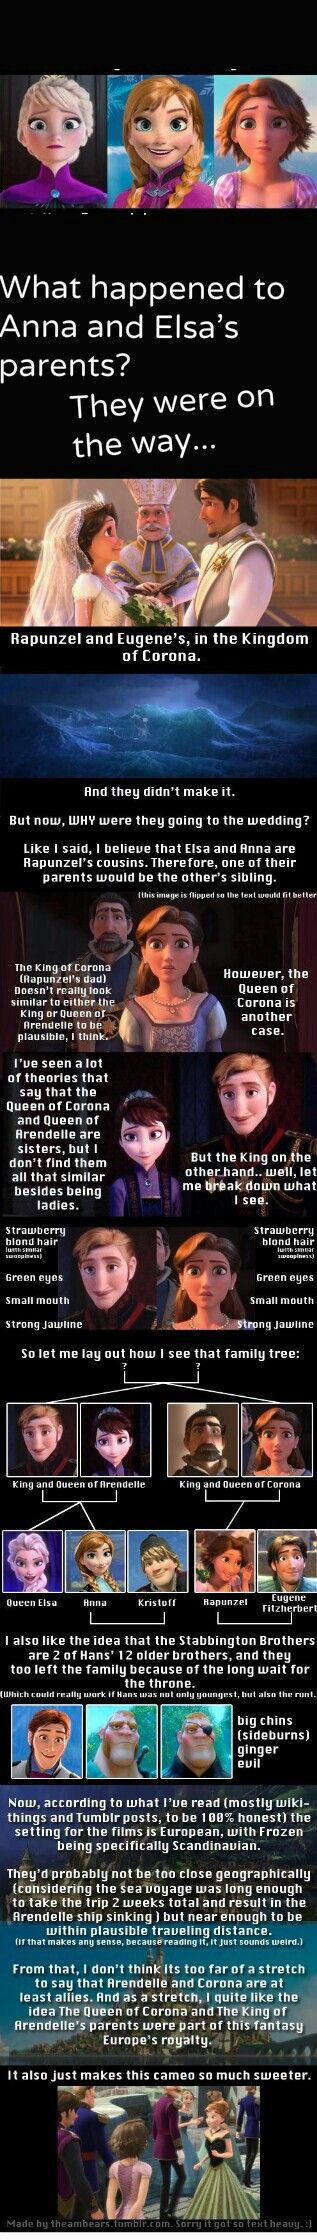 """Disney's """"Tangled"""" and """"Frozen"""" are connected."""